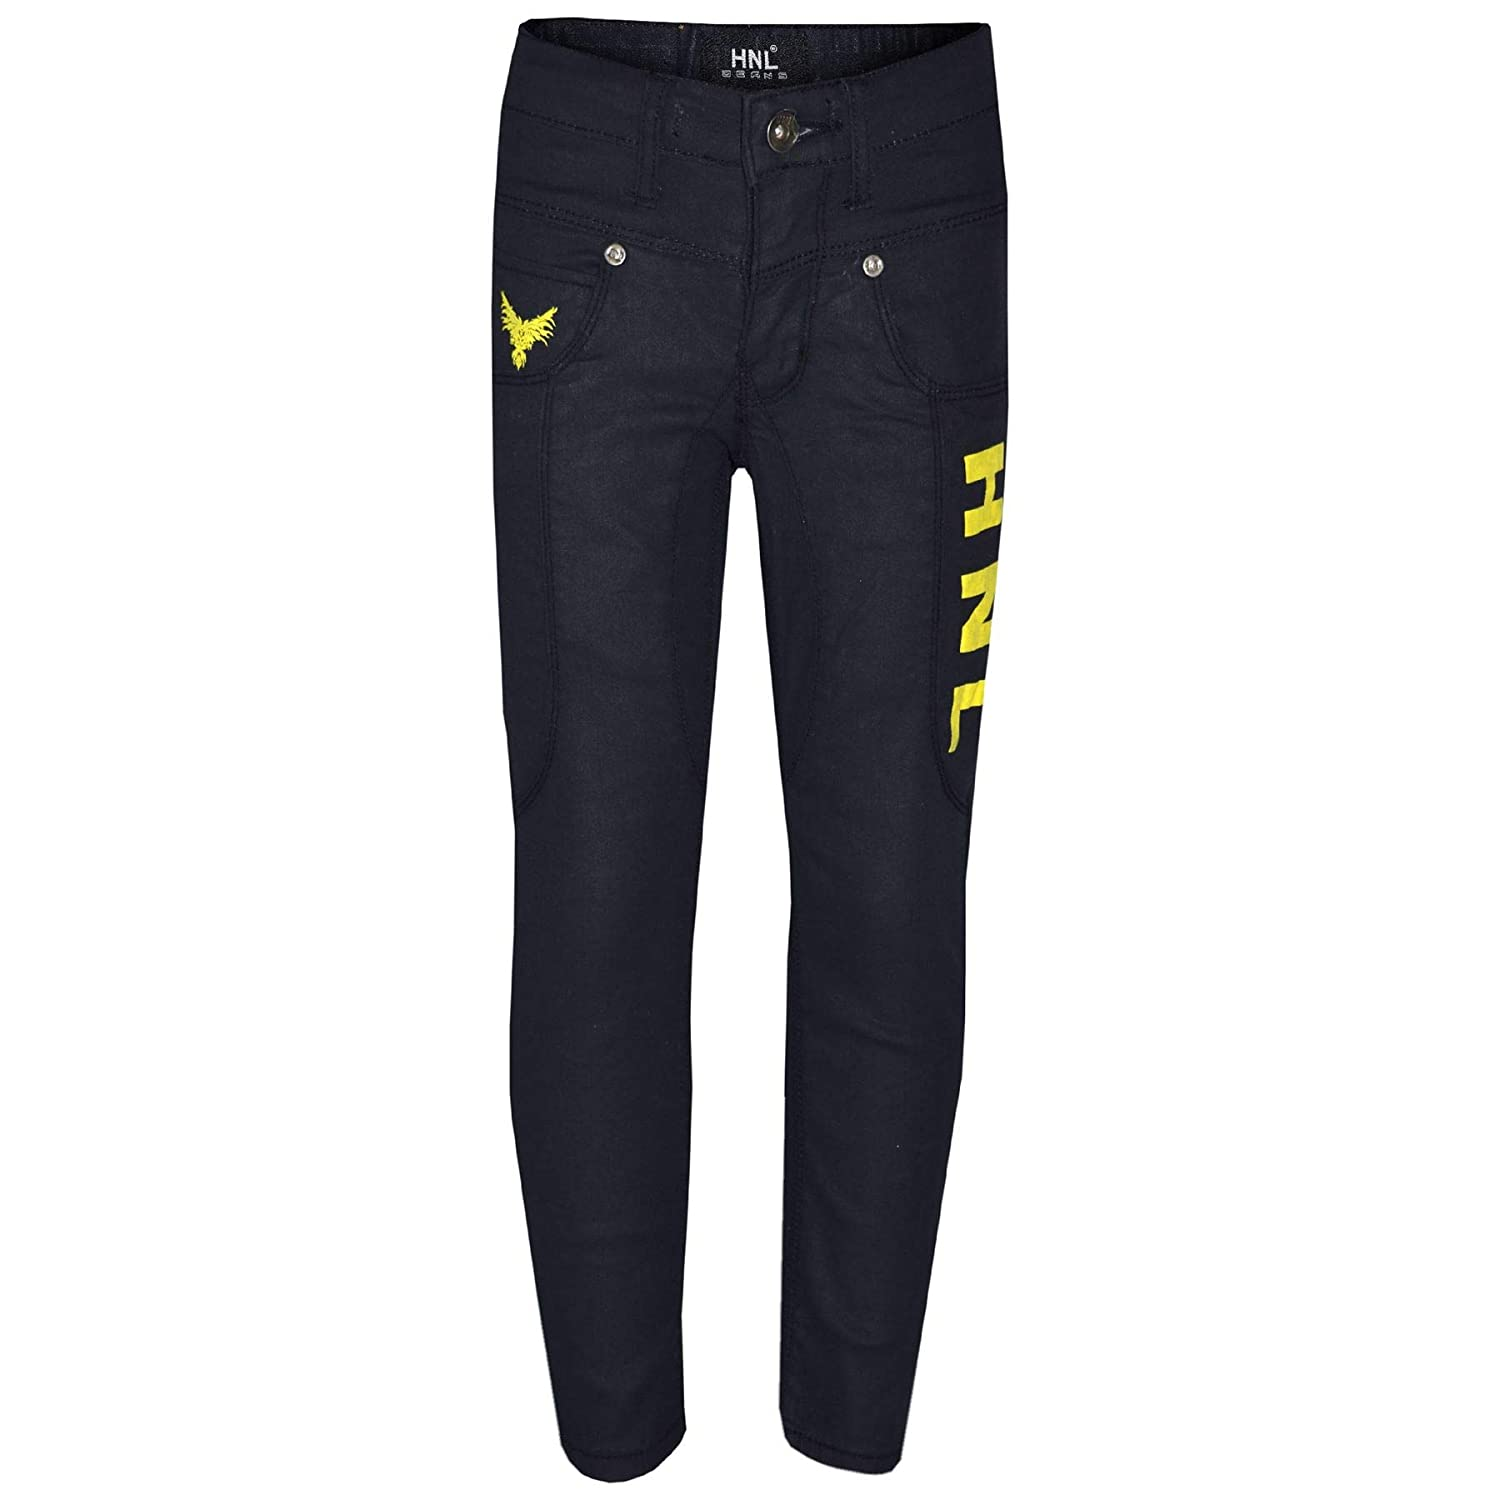 A2Z 4 Kids/® Kids Boys Stretchy Jeans Designers HNL Print Denim Skinny Pants Fashion Trousers Age 5 6 7 8 9 10 11 12 13 Years